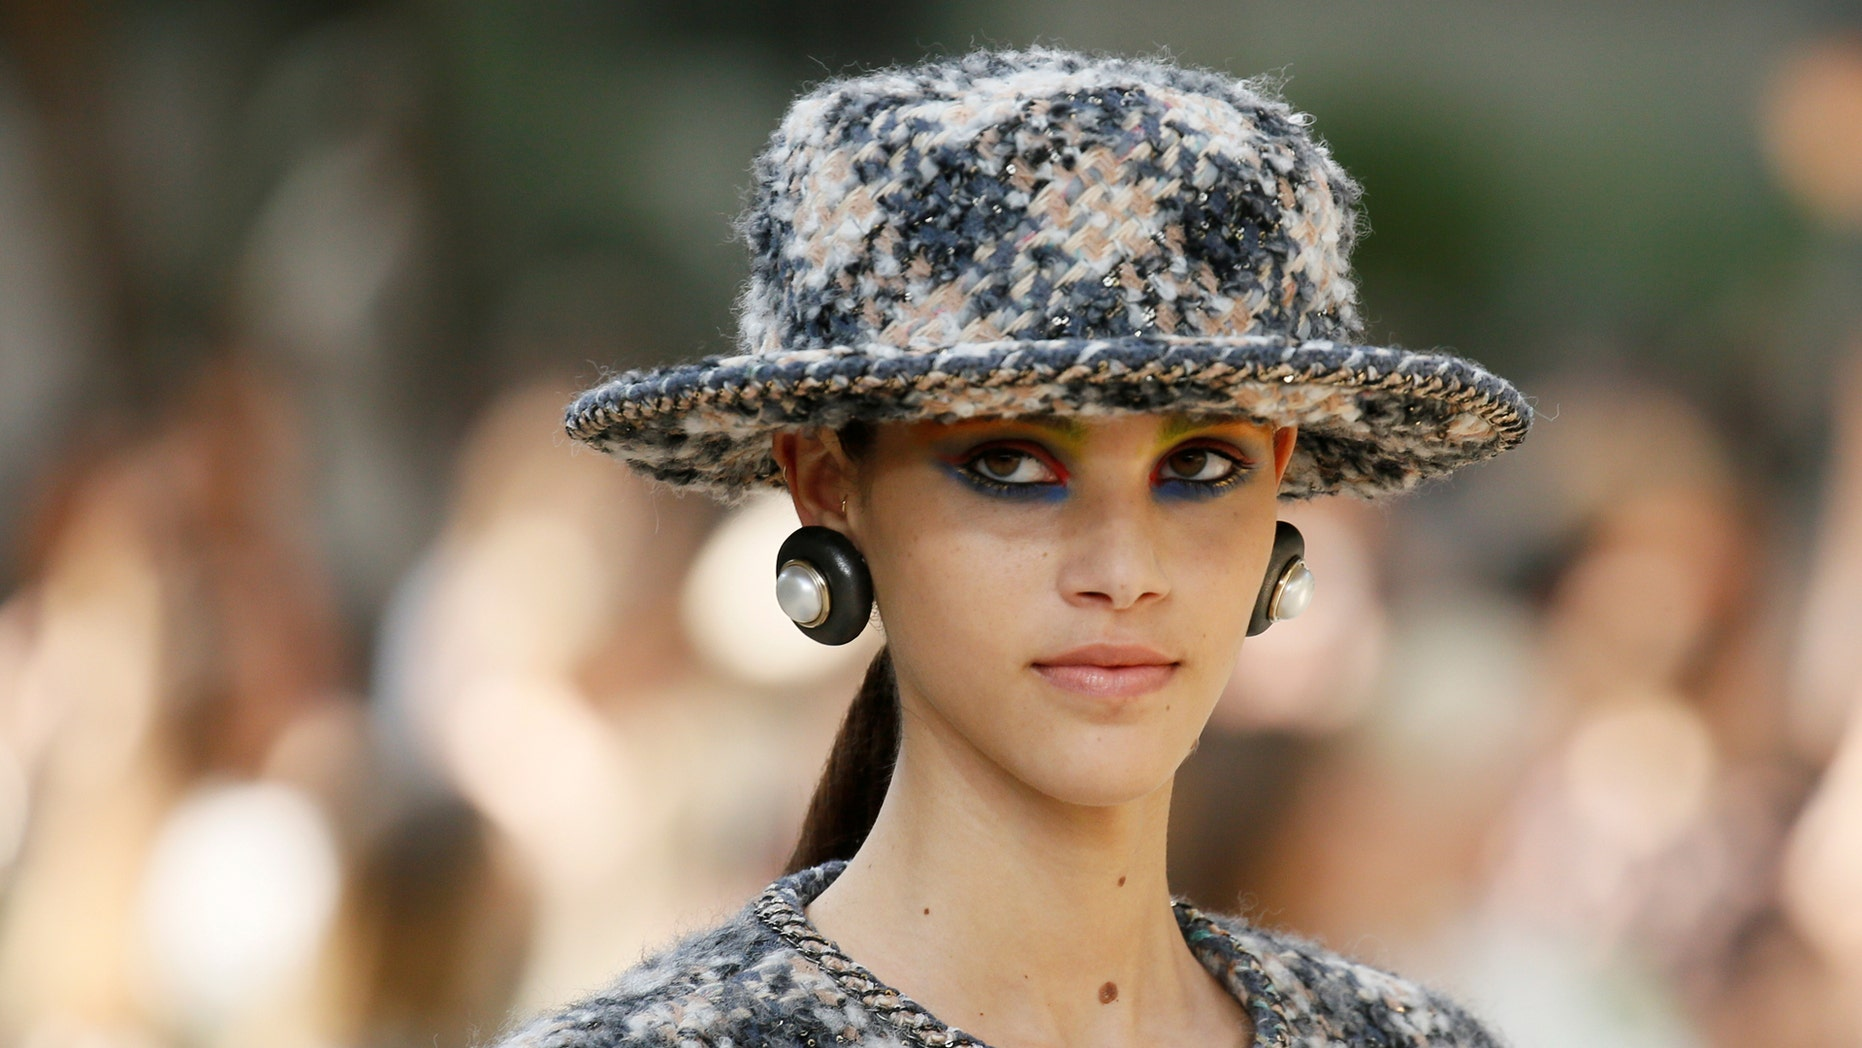 File photo: A model presents a creation by German designer Karl Lagerfeld as part of his Haute Couture Fall/Winter 2017/2018 collection for fashion house Chanel in Paris, France, July 4, 2017. (REUTERS/Gonzalo Fuentes)